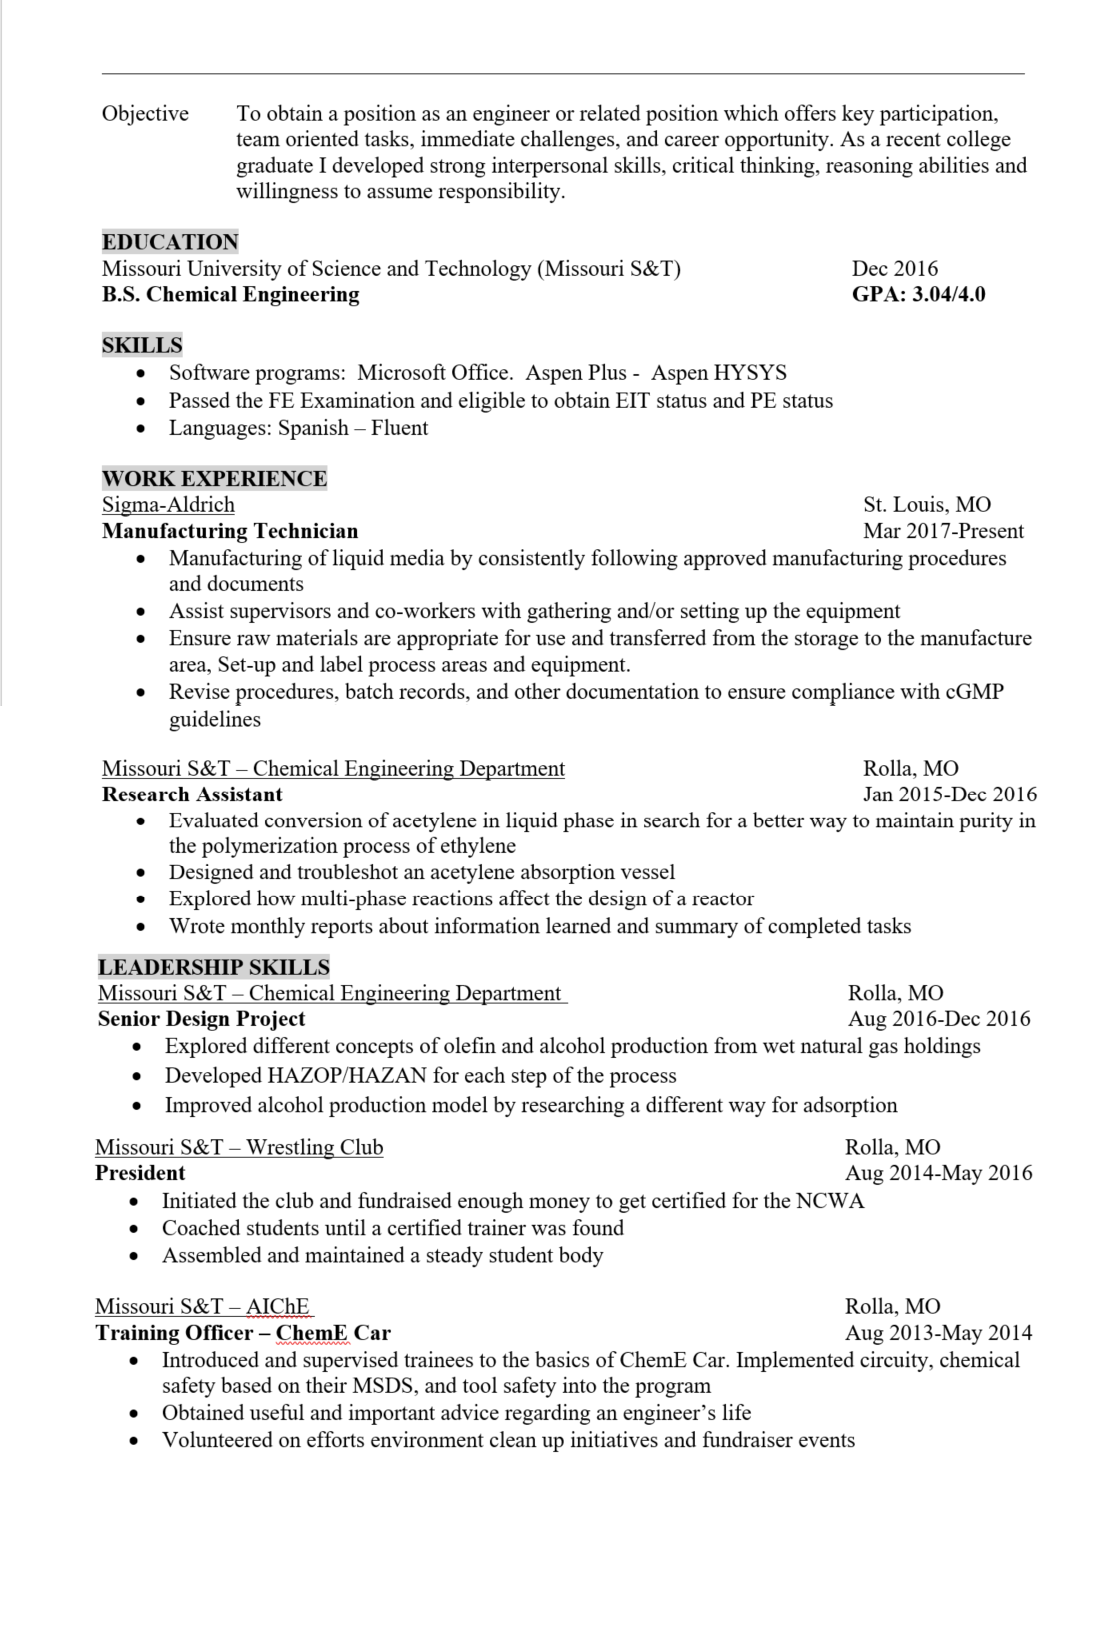 Wrestling Resume Can You Guys Look Over My Resume Thanks In Advance